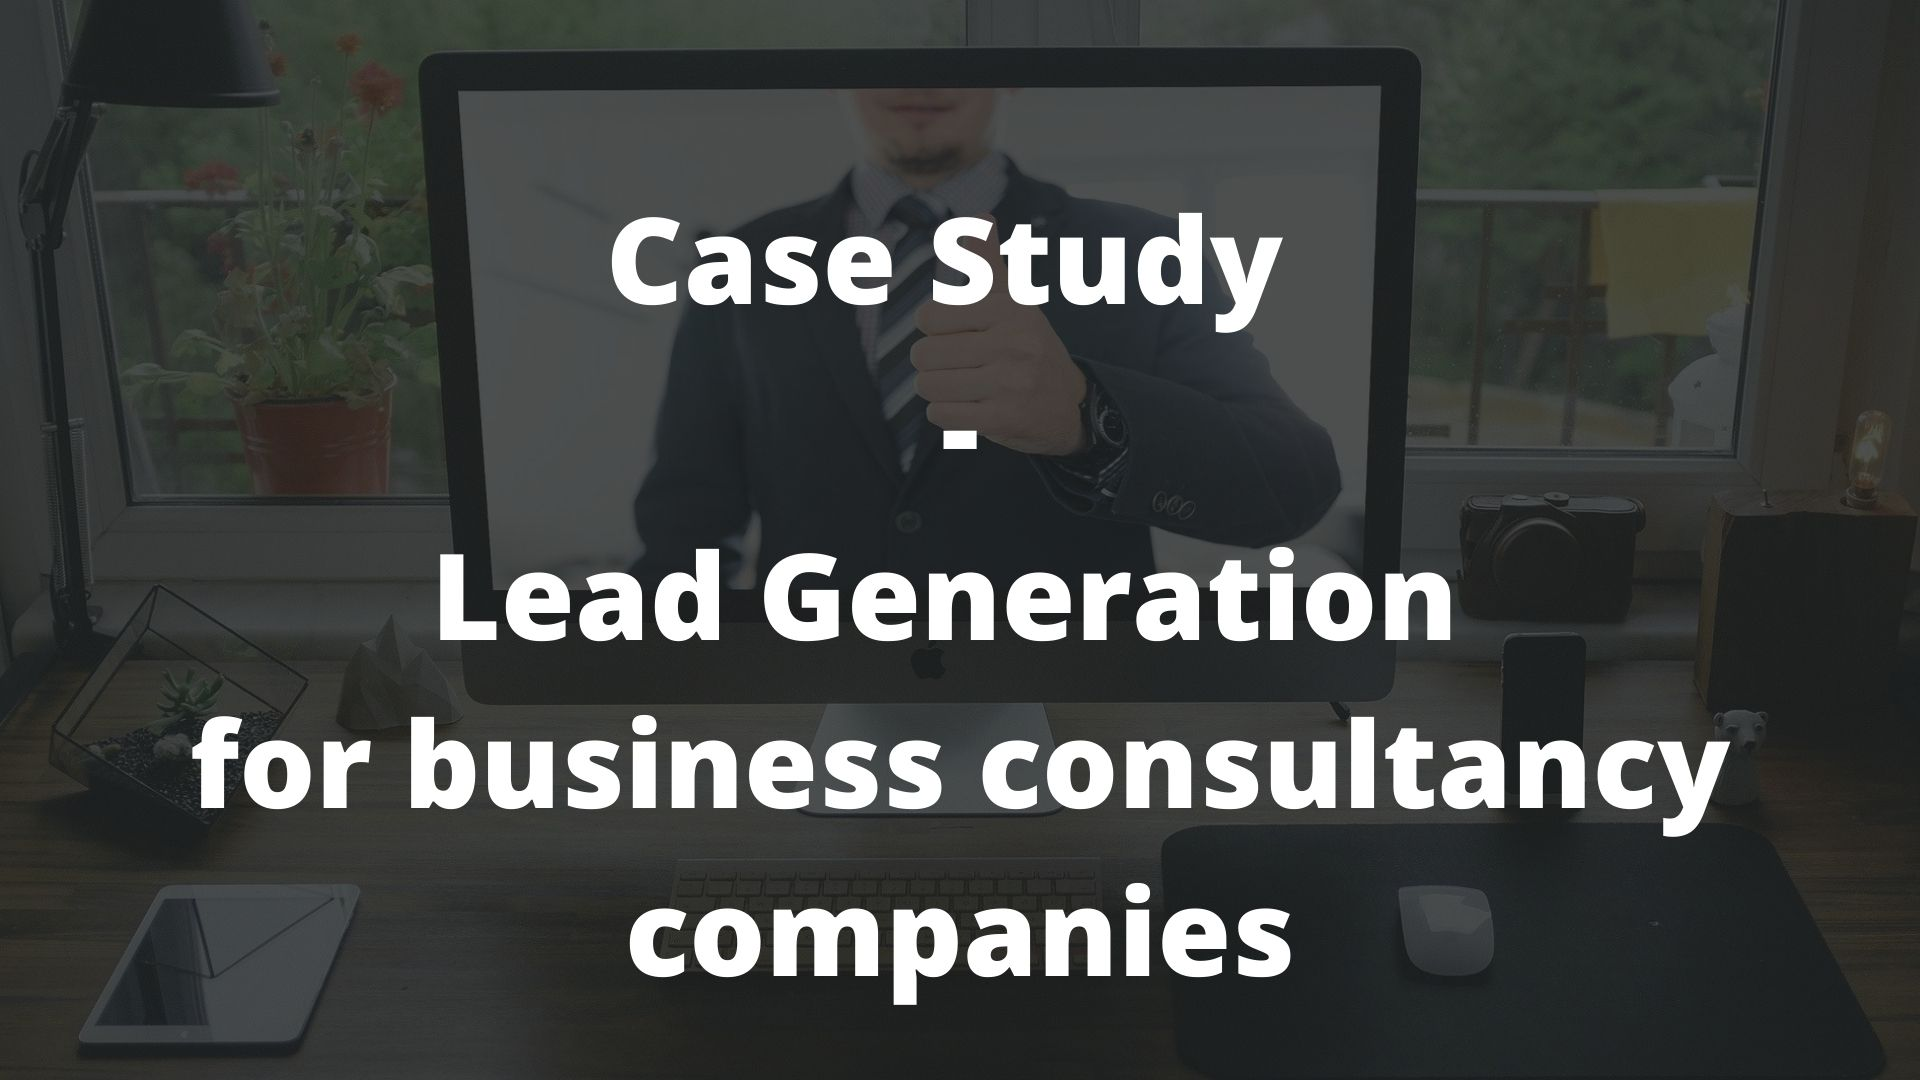 Lead Generation for business consultancy companies - Case study